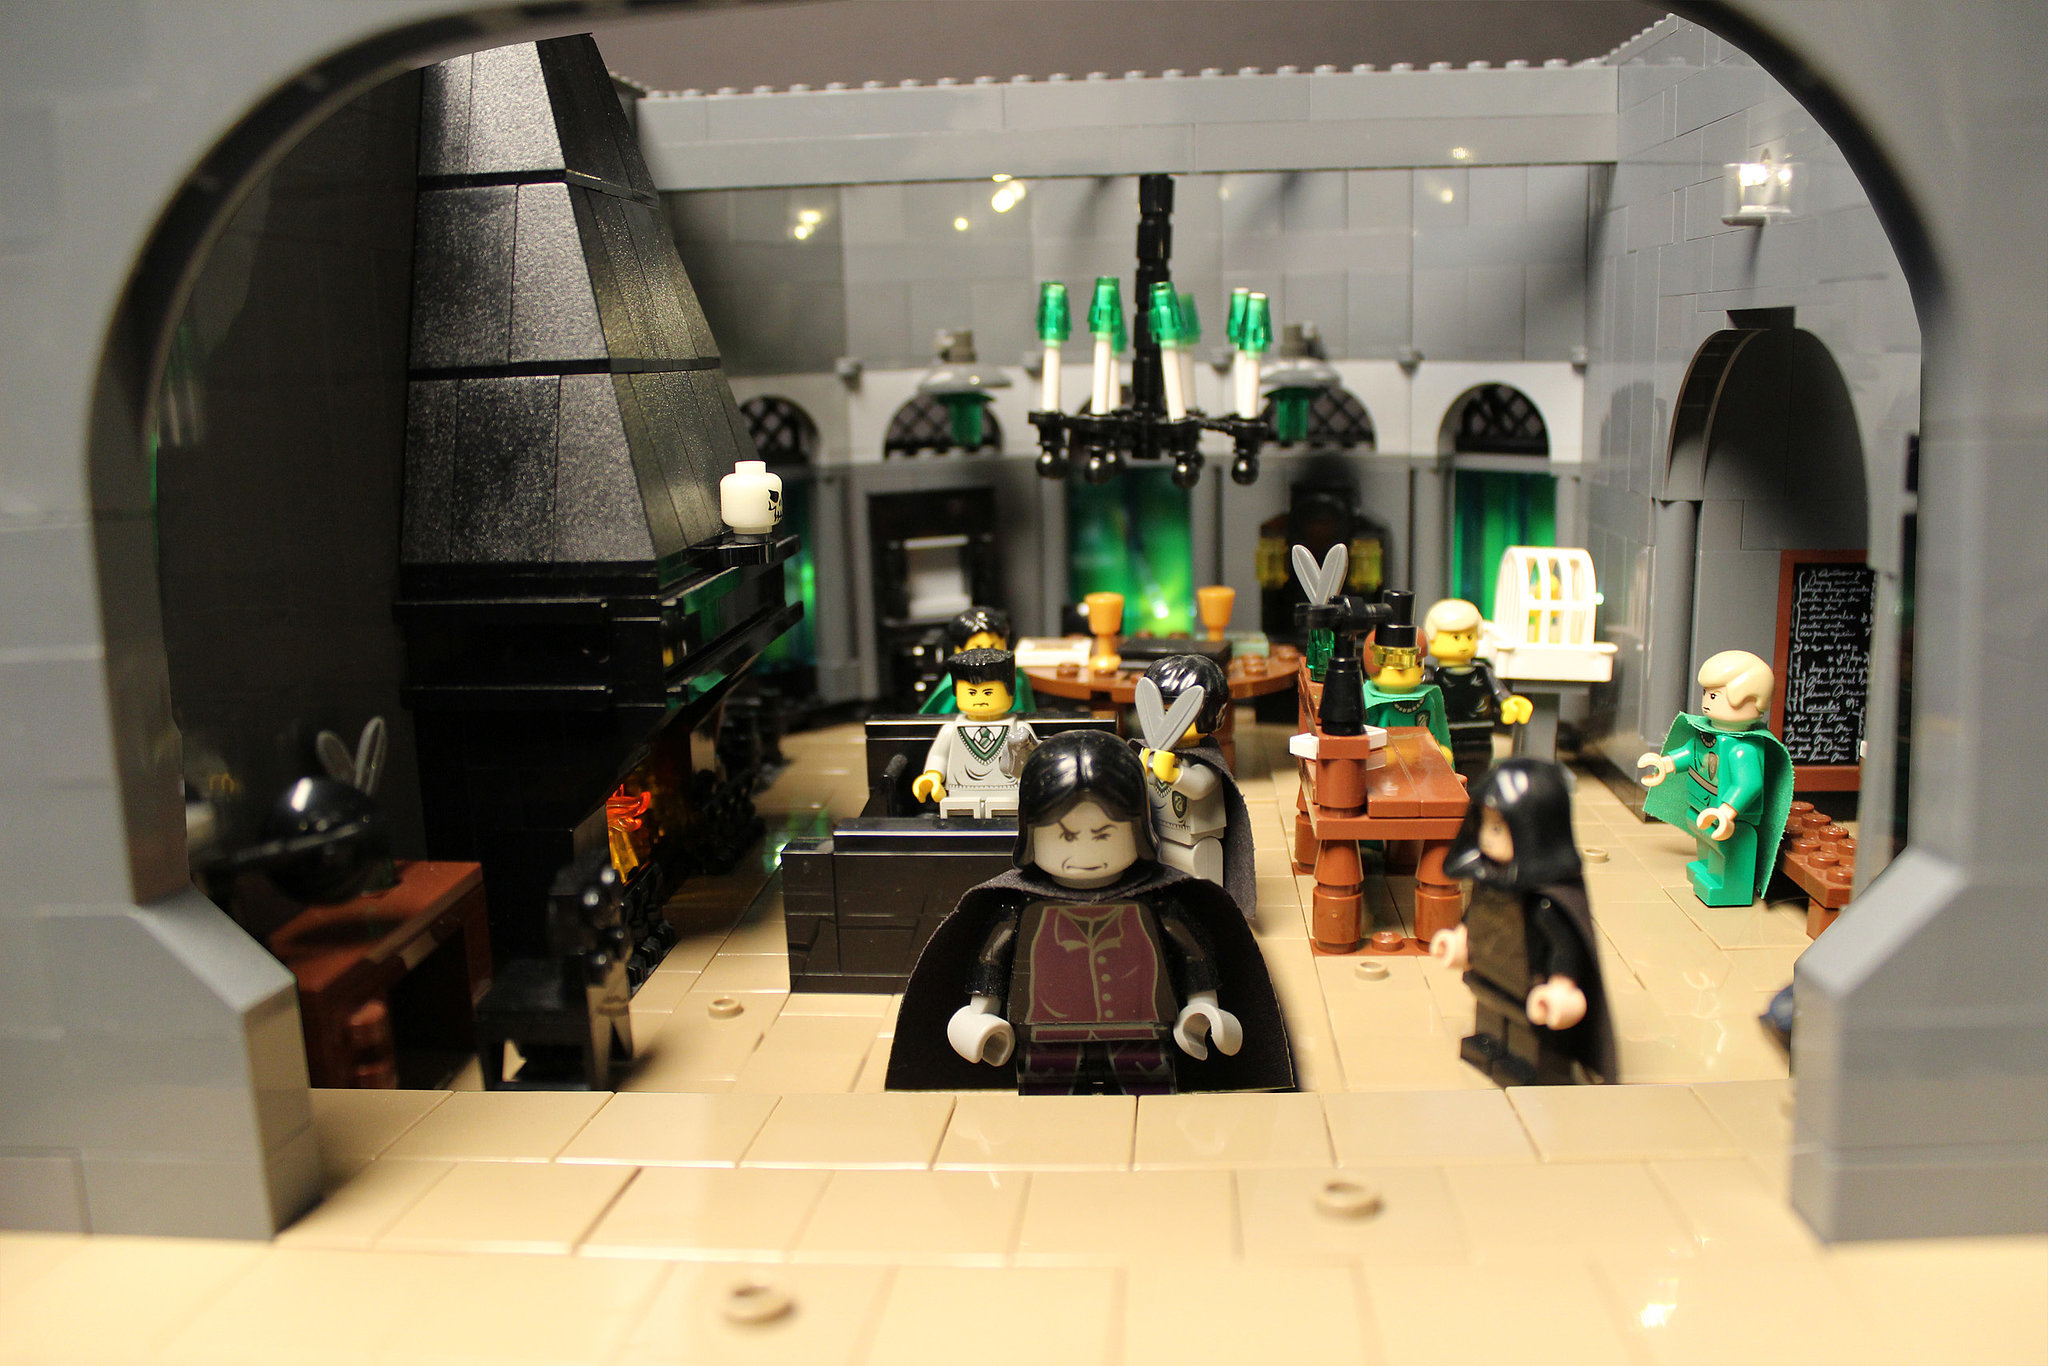 Snape's Classroom   A Supermom Created This 400,000-Piece ...